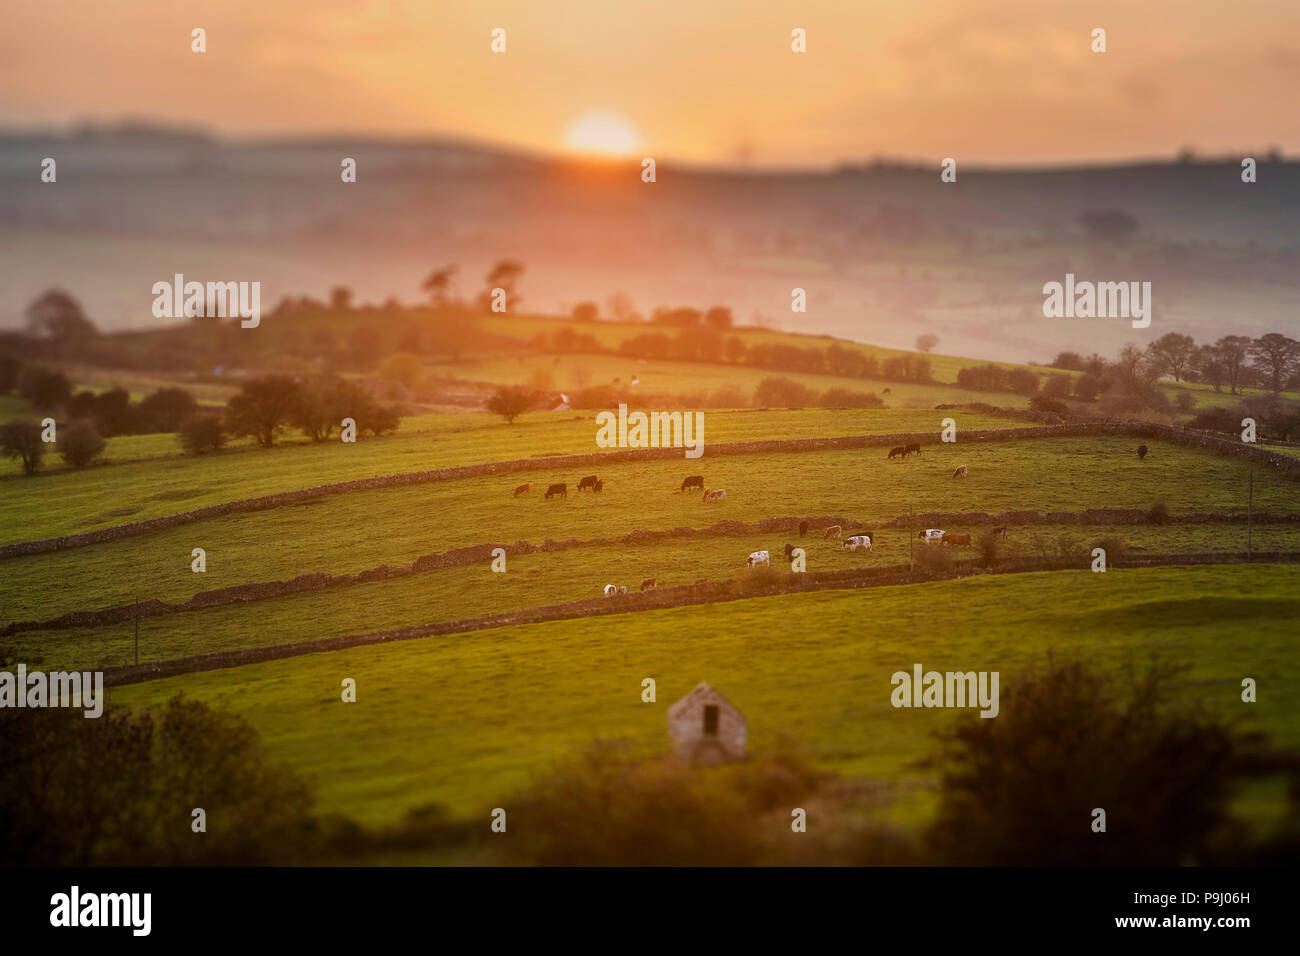 Cows Grazing at Sunset in Derbyshire with Tilt Shift Focus Effect - Stock Image